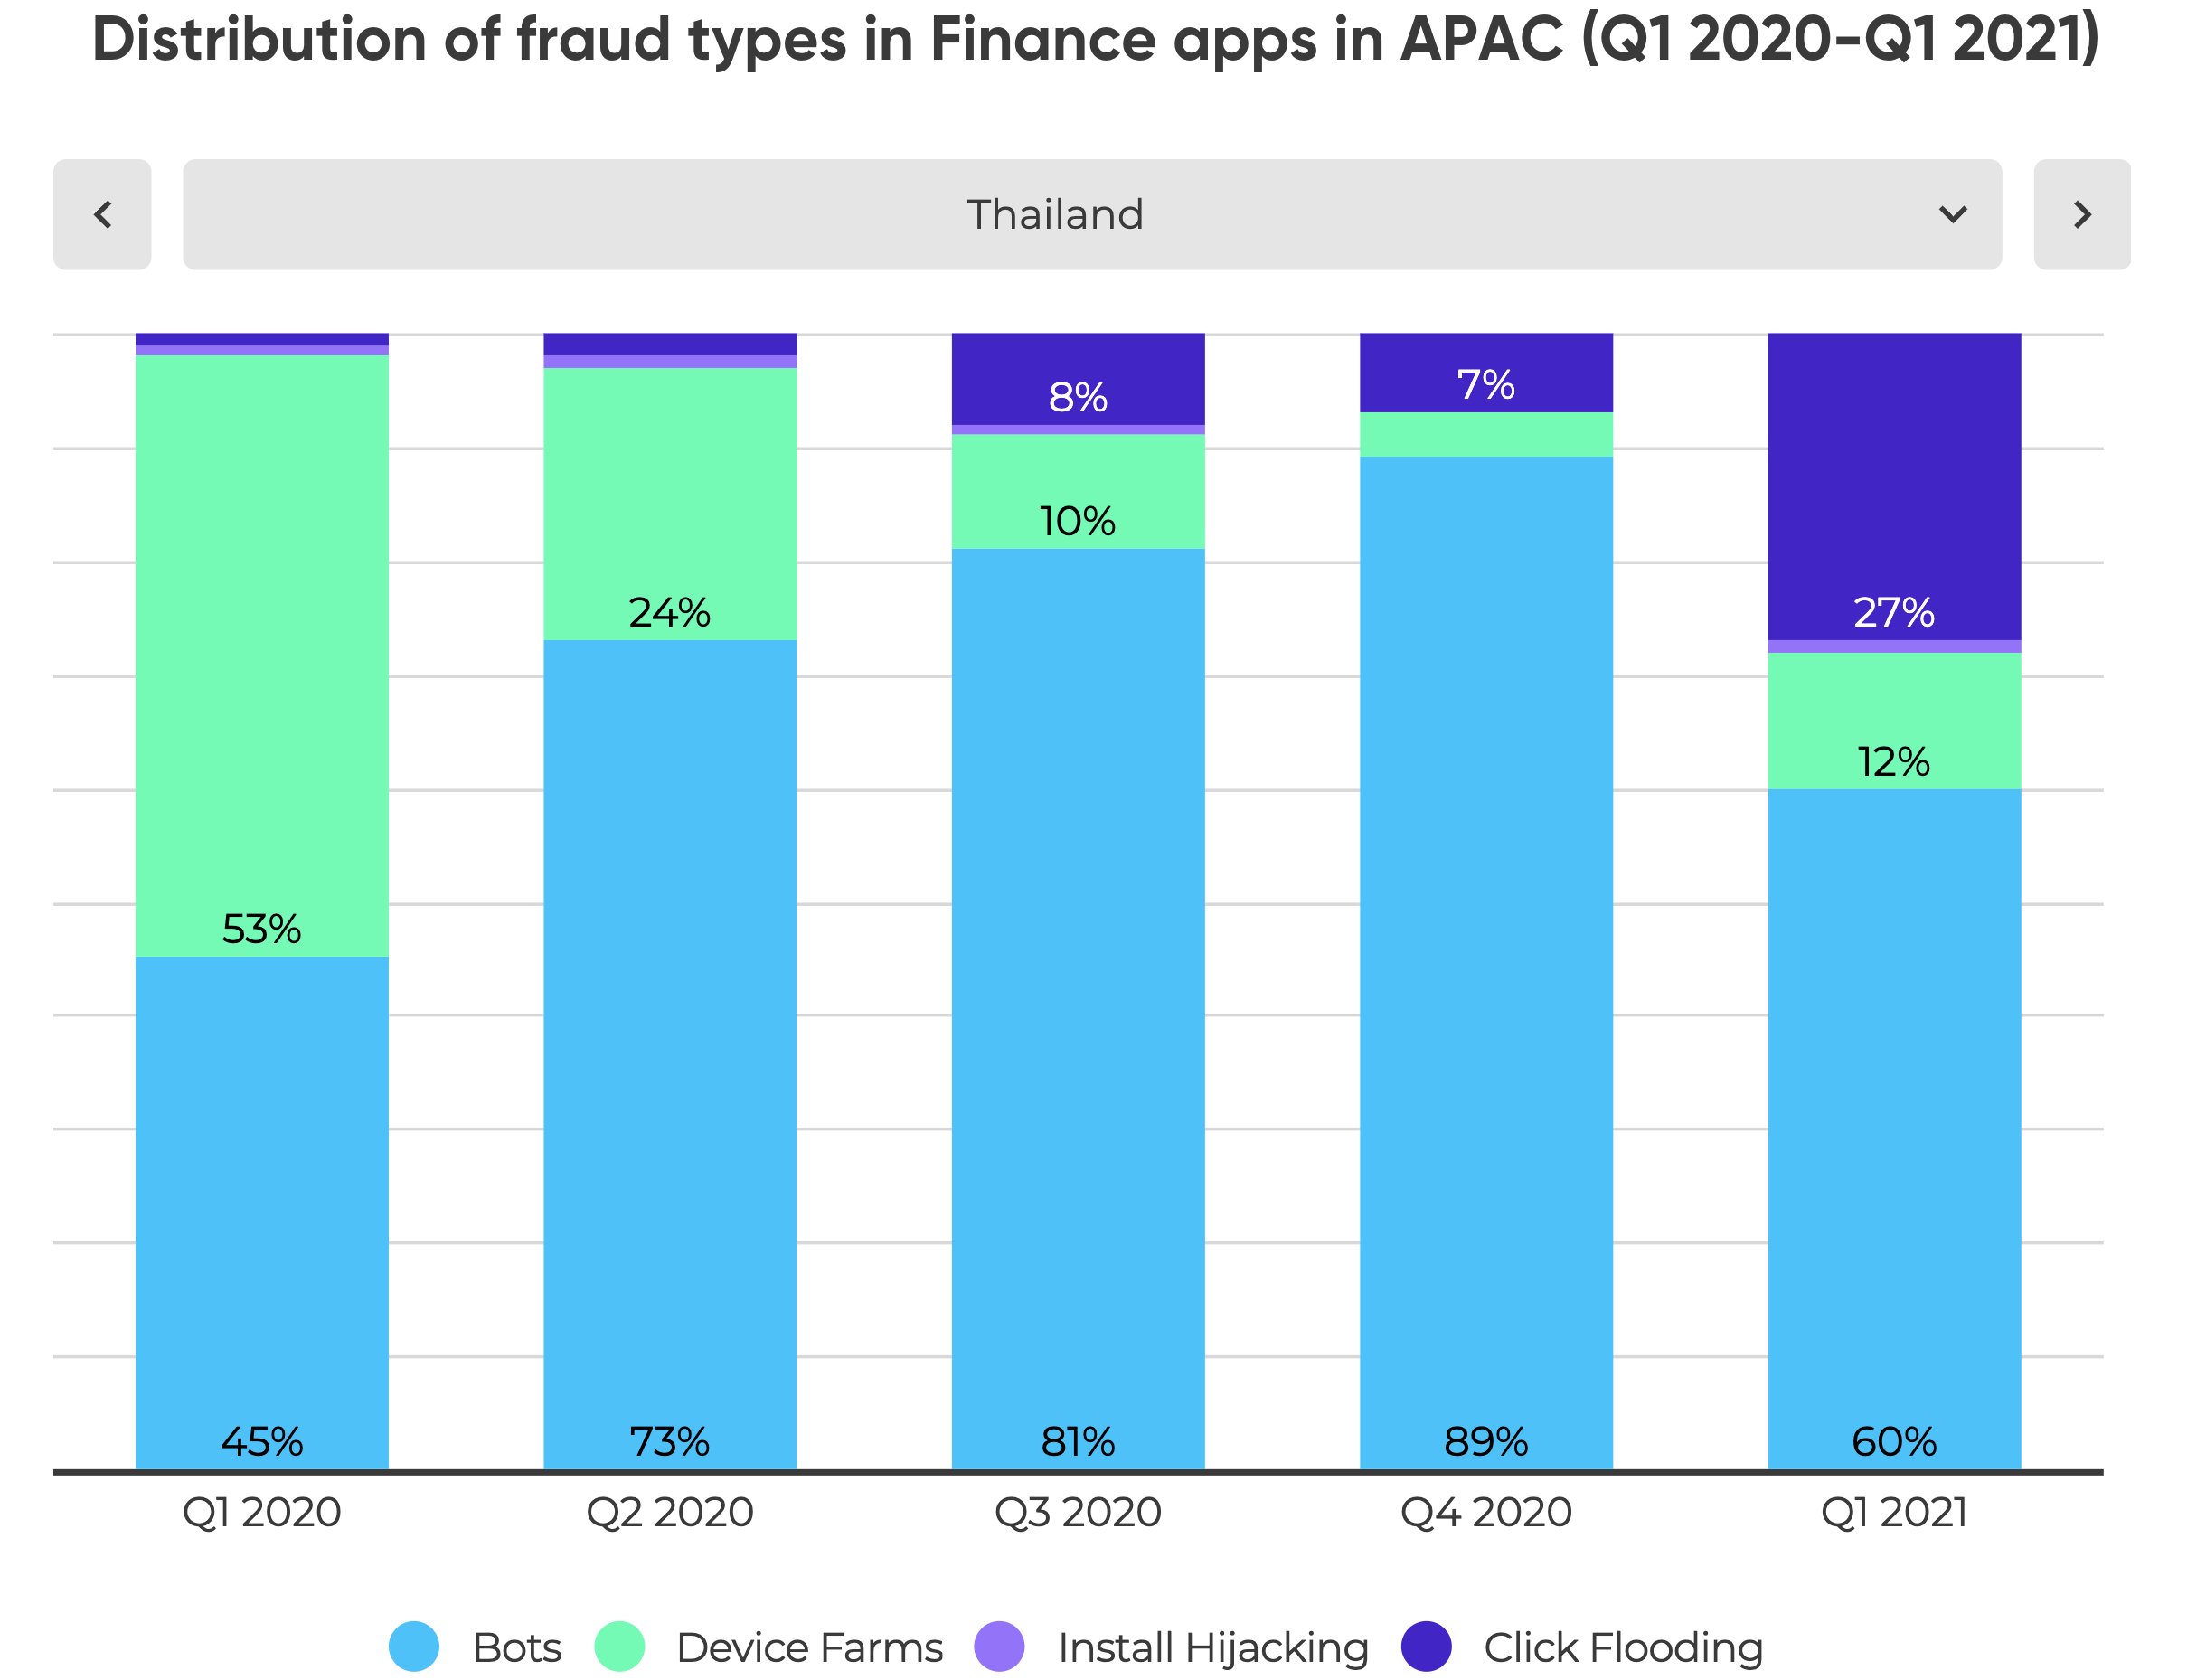 Distribution of Fraud Types - TH